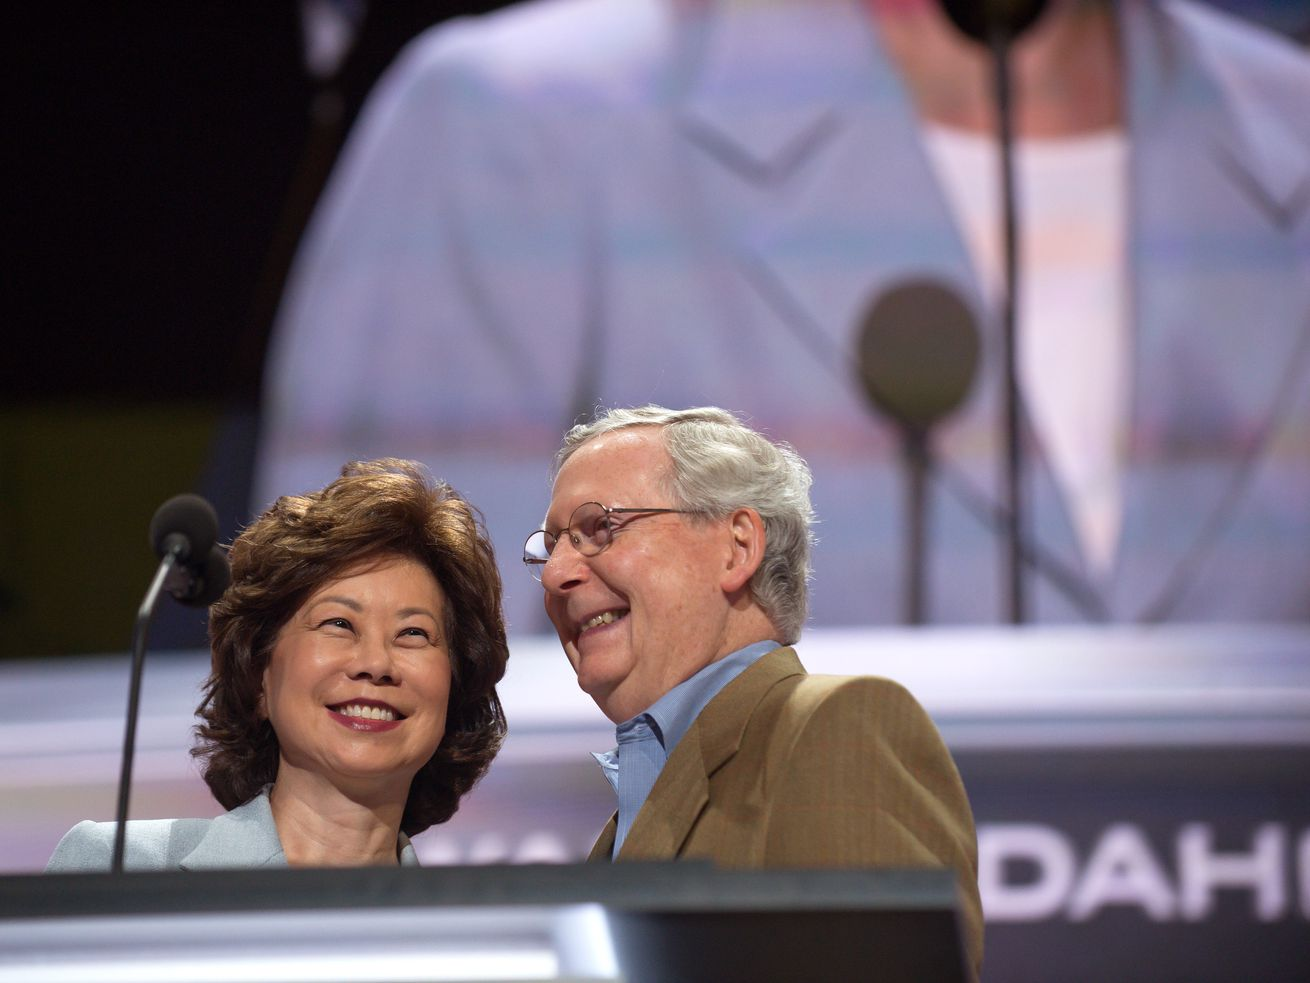 Mitch McConnell and his wife, Elaine Chao, check the podium the day before the start of the Republican National Convention at the Quicken Loans Arena in Cleveland on July 17, 2016.